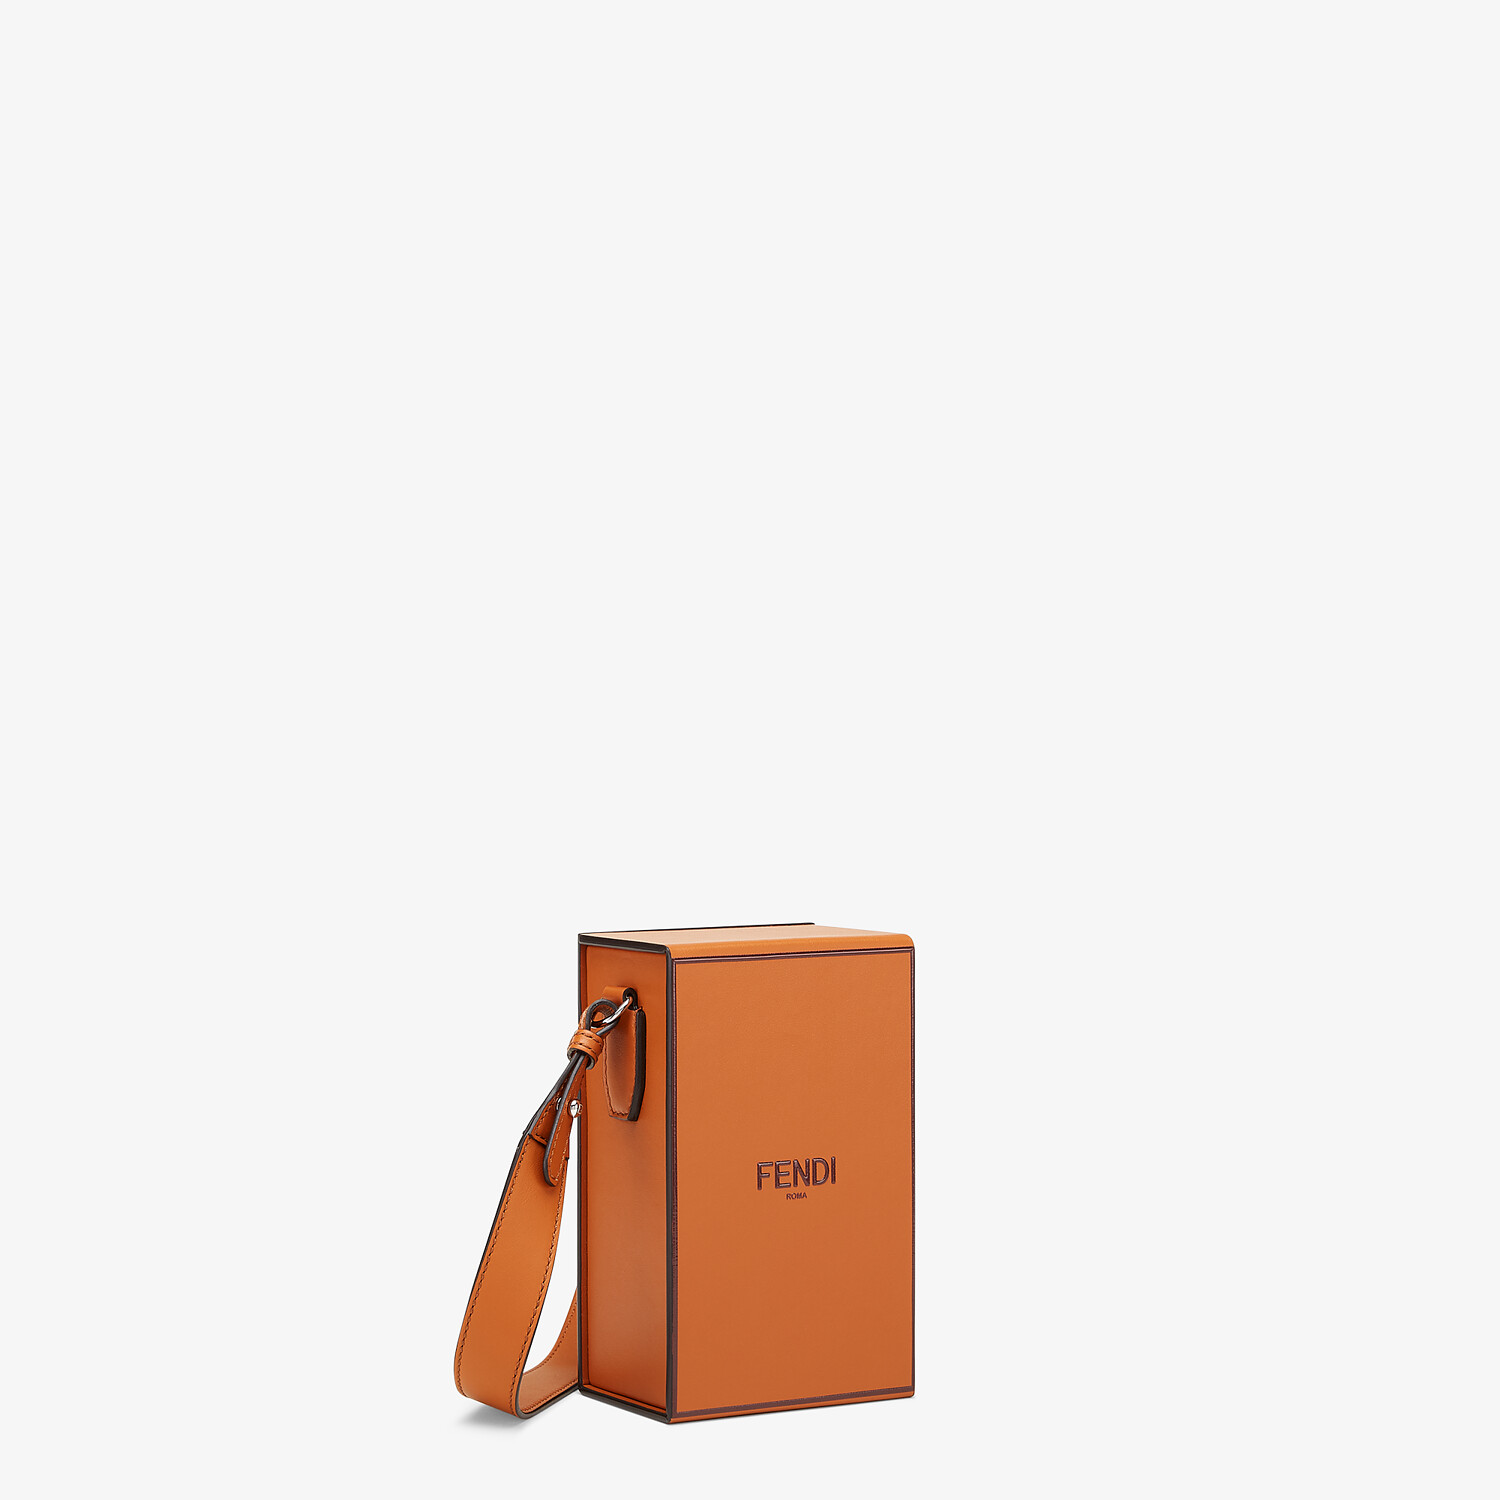 FENDI VERTICAL BOX - Brown leather bag - view 2 detail